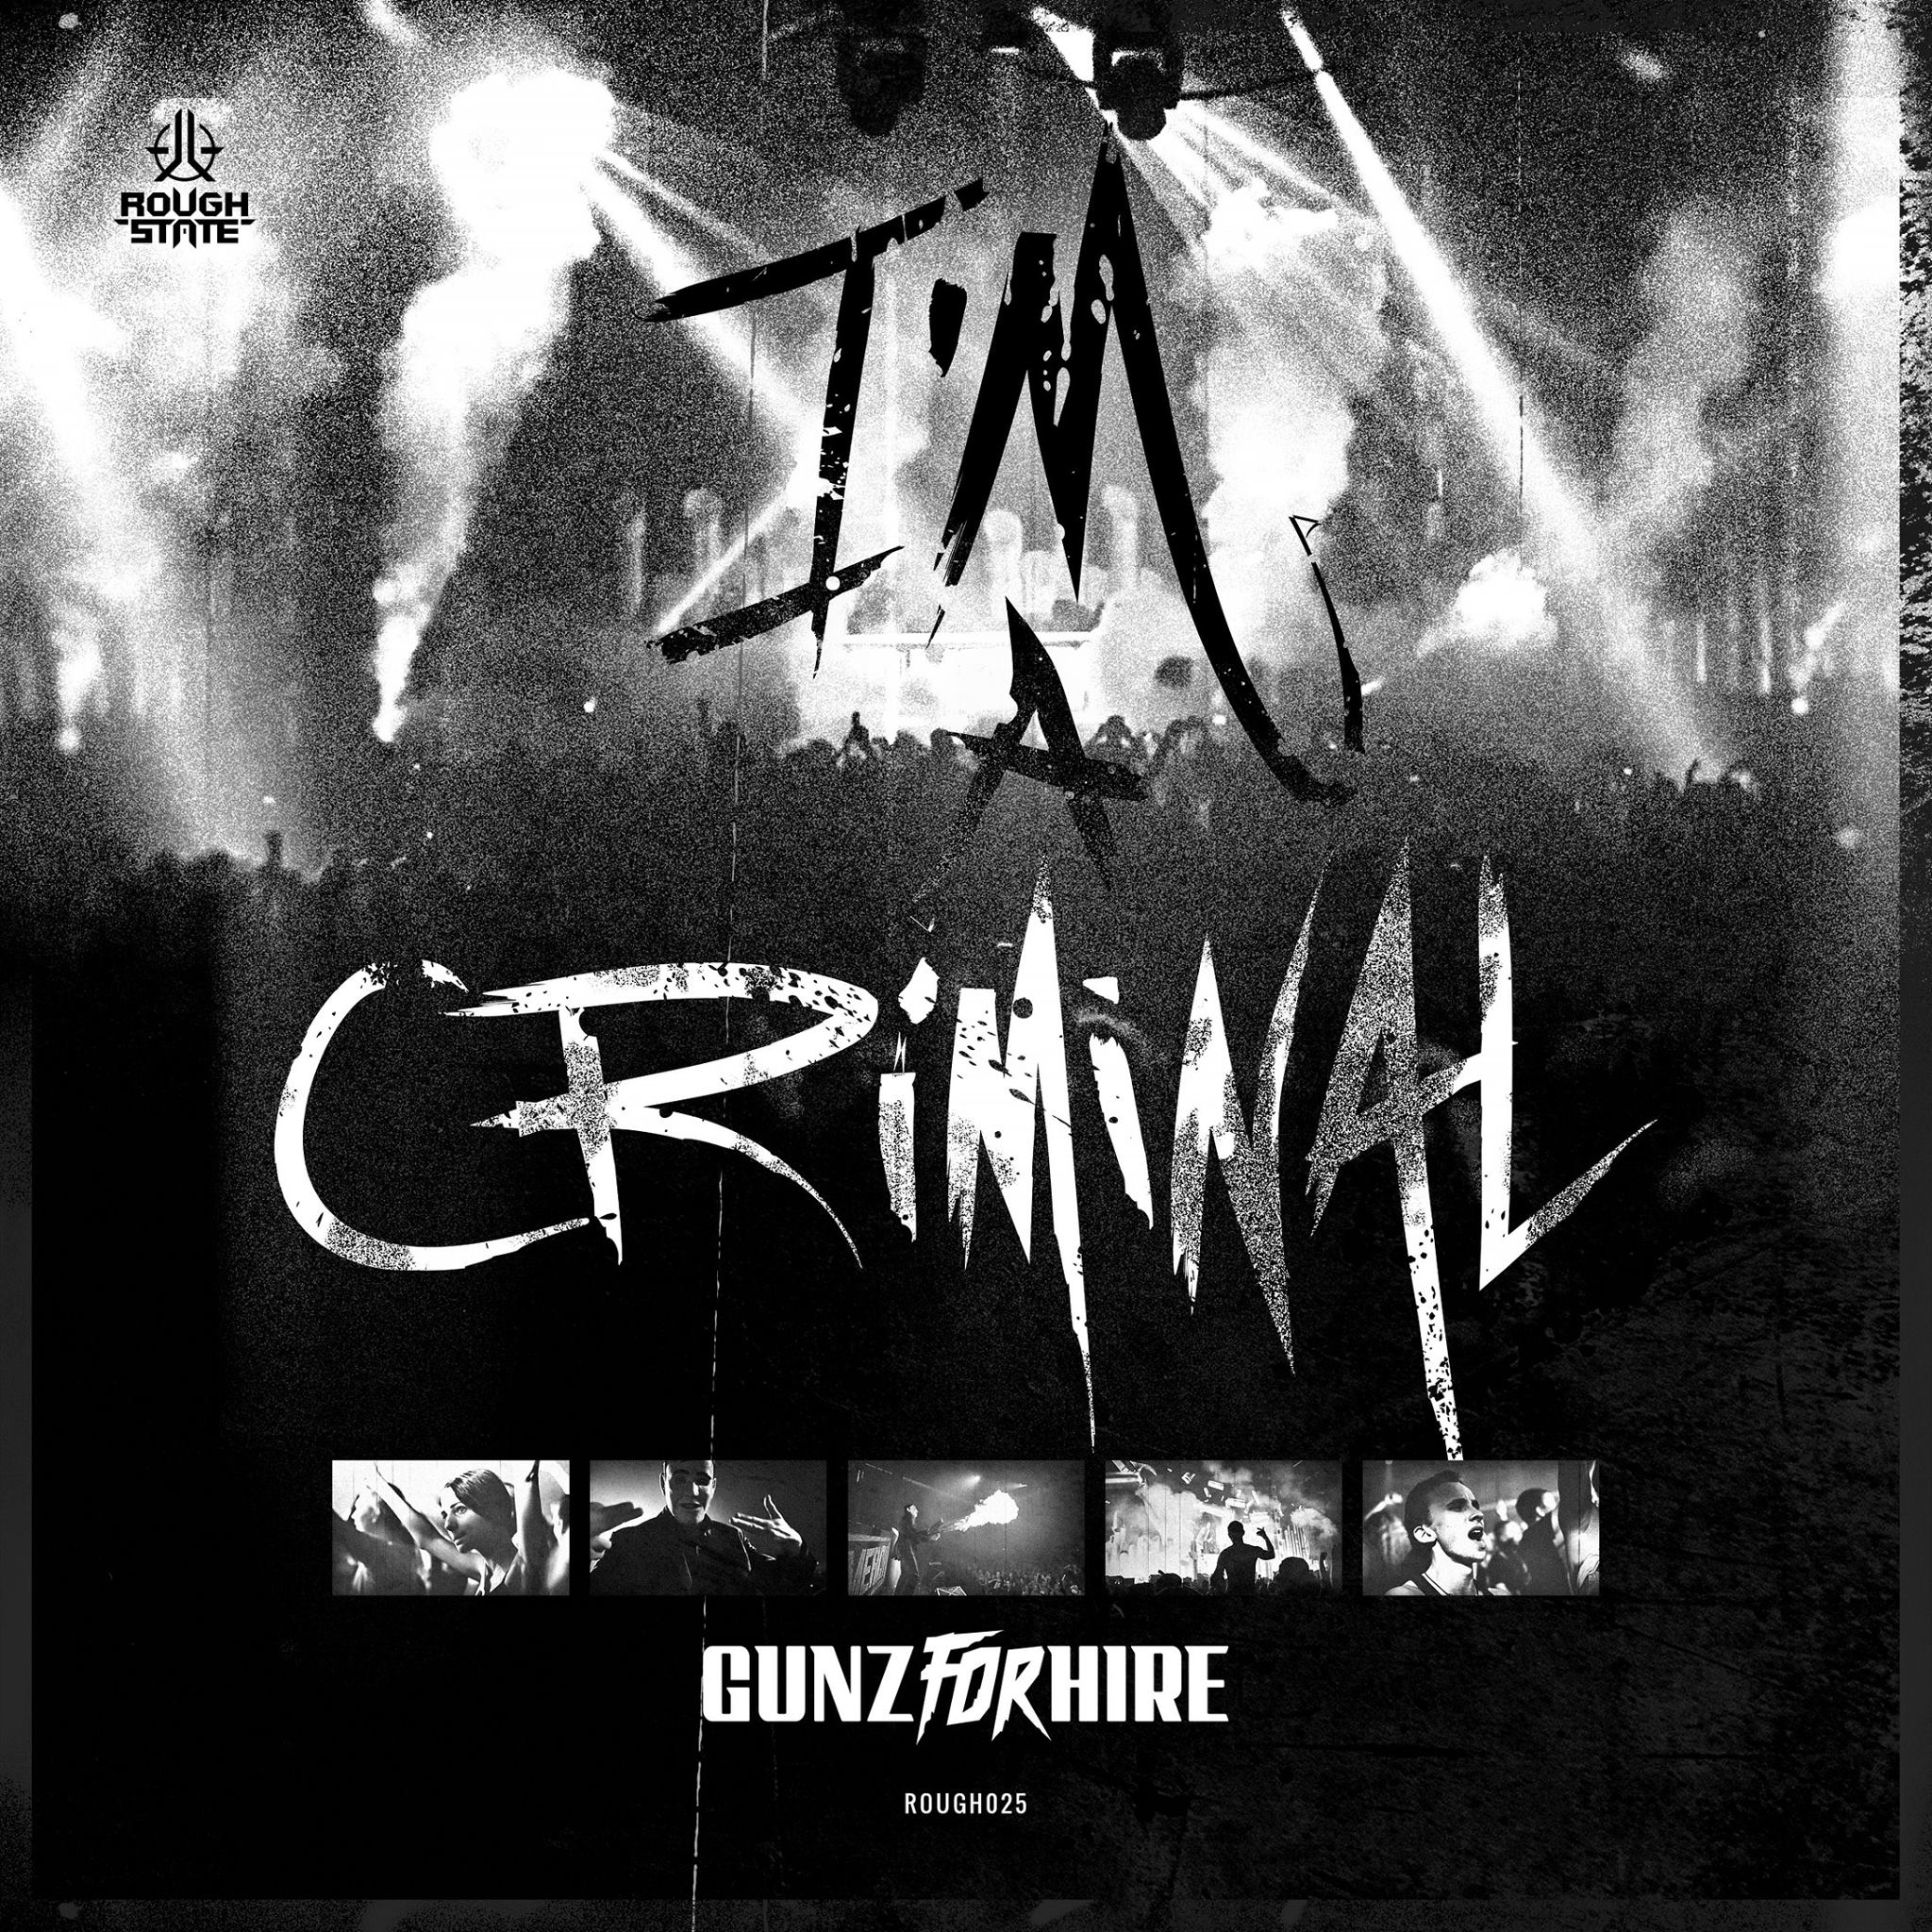 Gunz For Hire - I'm A Criminal [ROUGHSTATE MUSIC]  ROUGH025